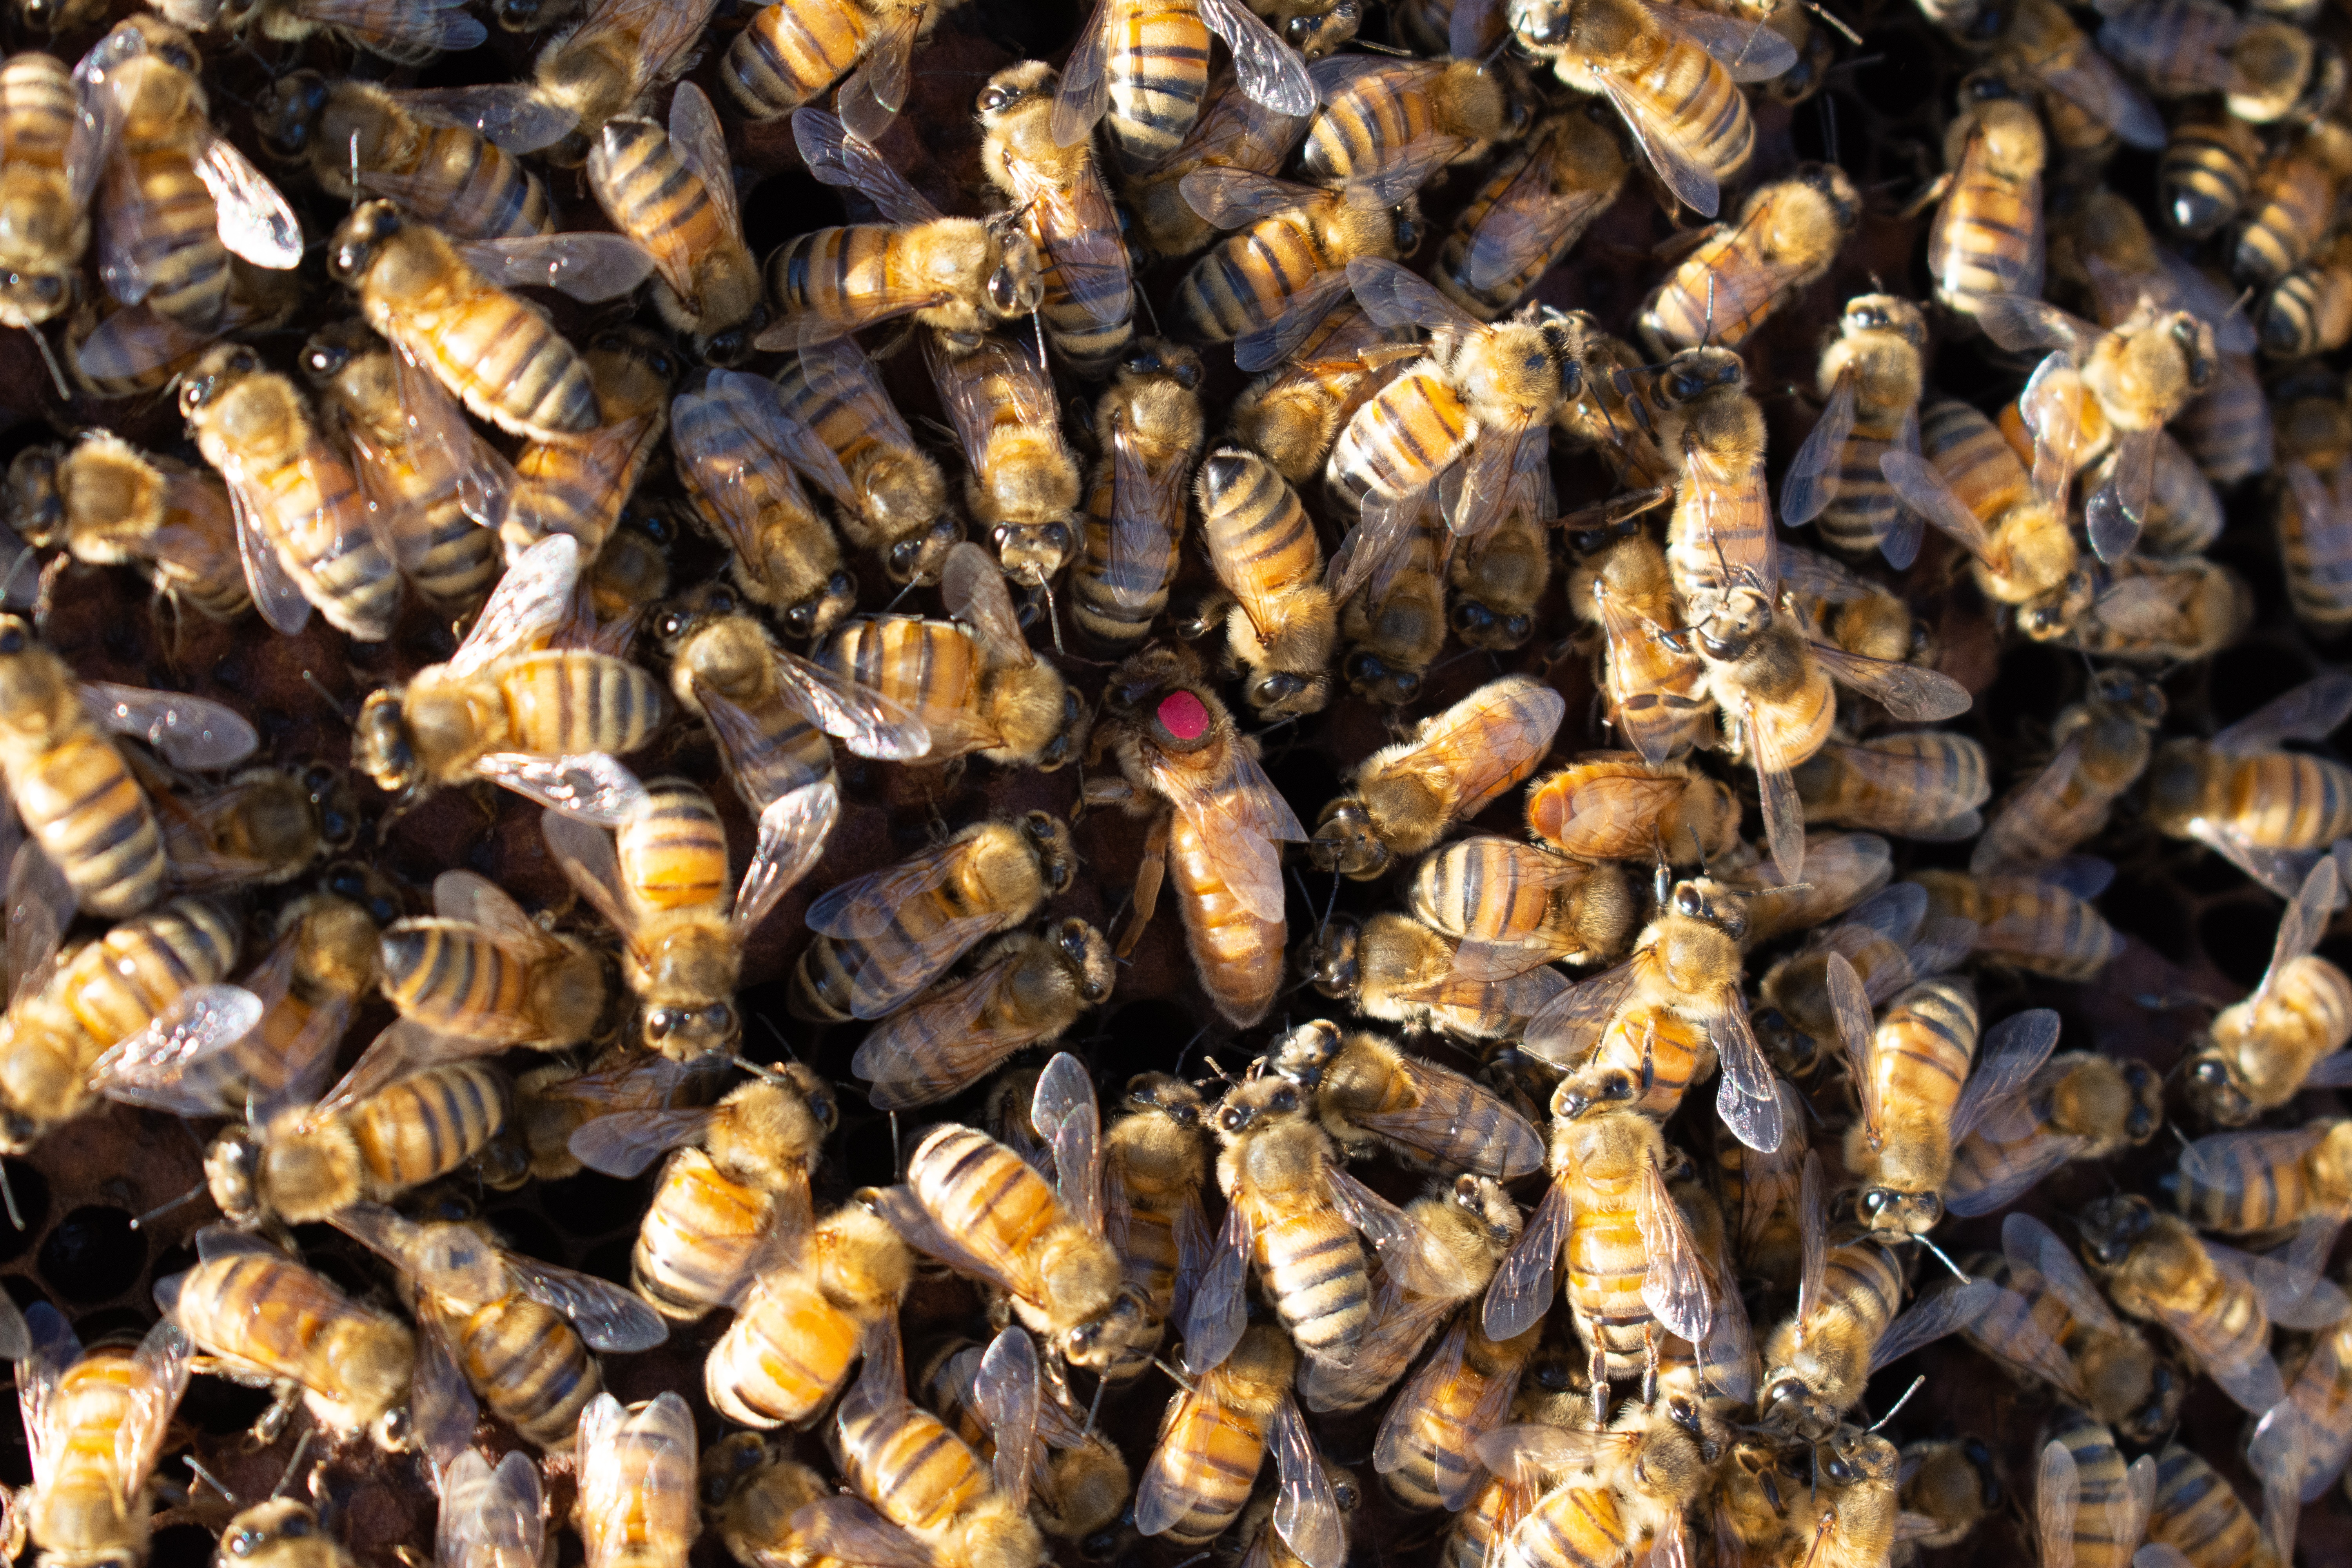 Honey bees' importance to the environment and businesses